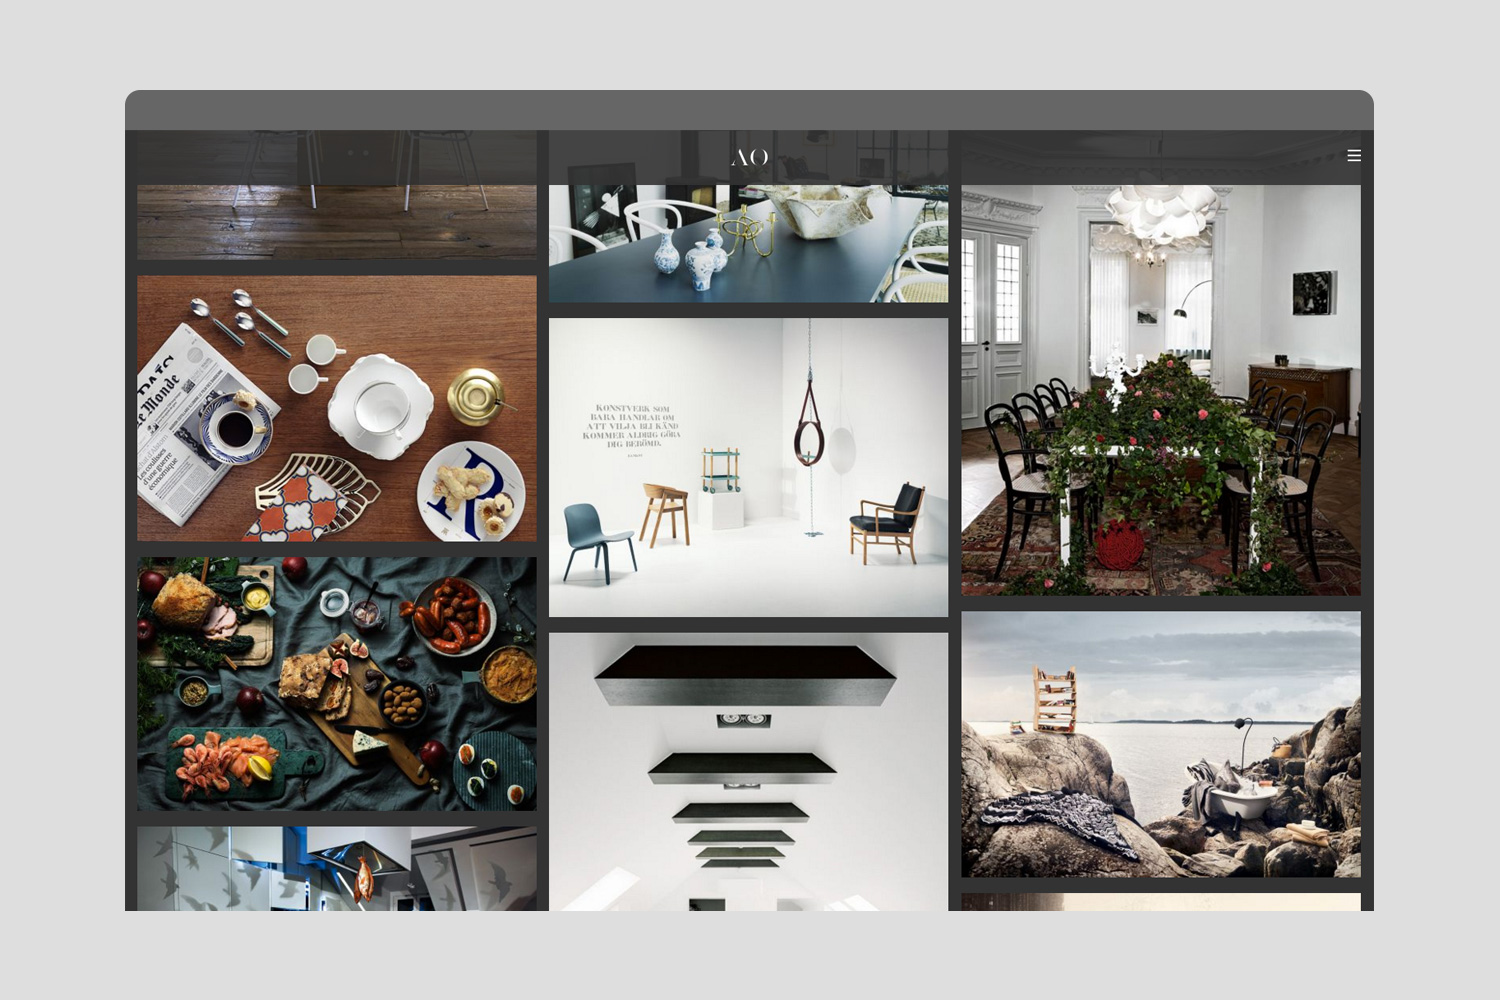 ao-interiors-web-design-astein-2